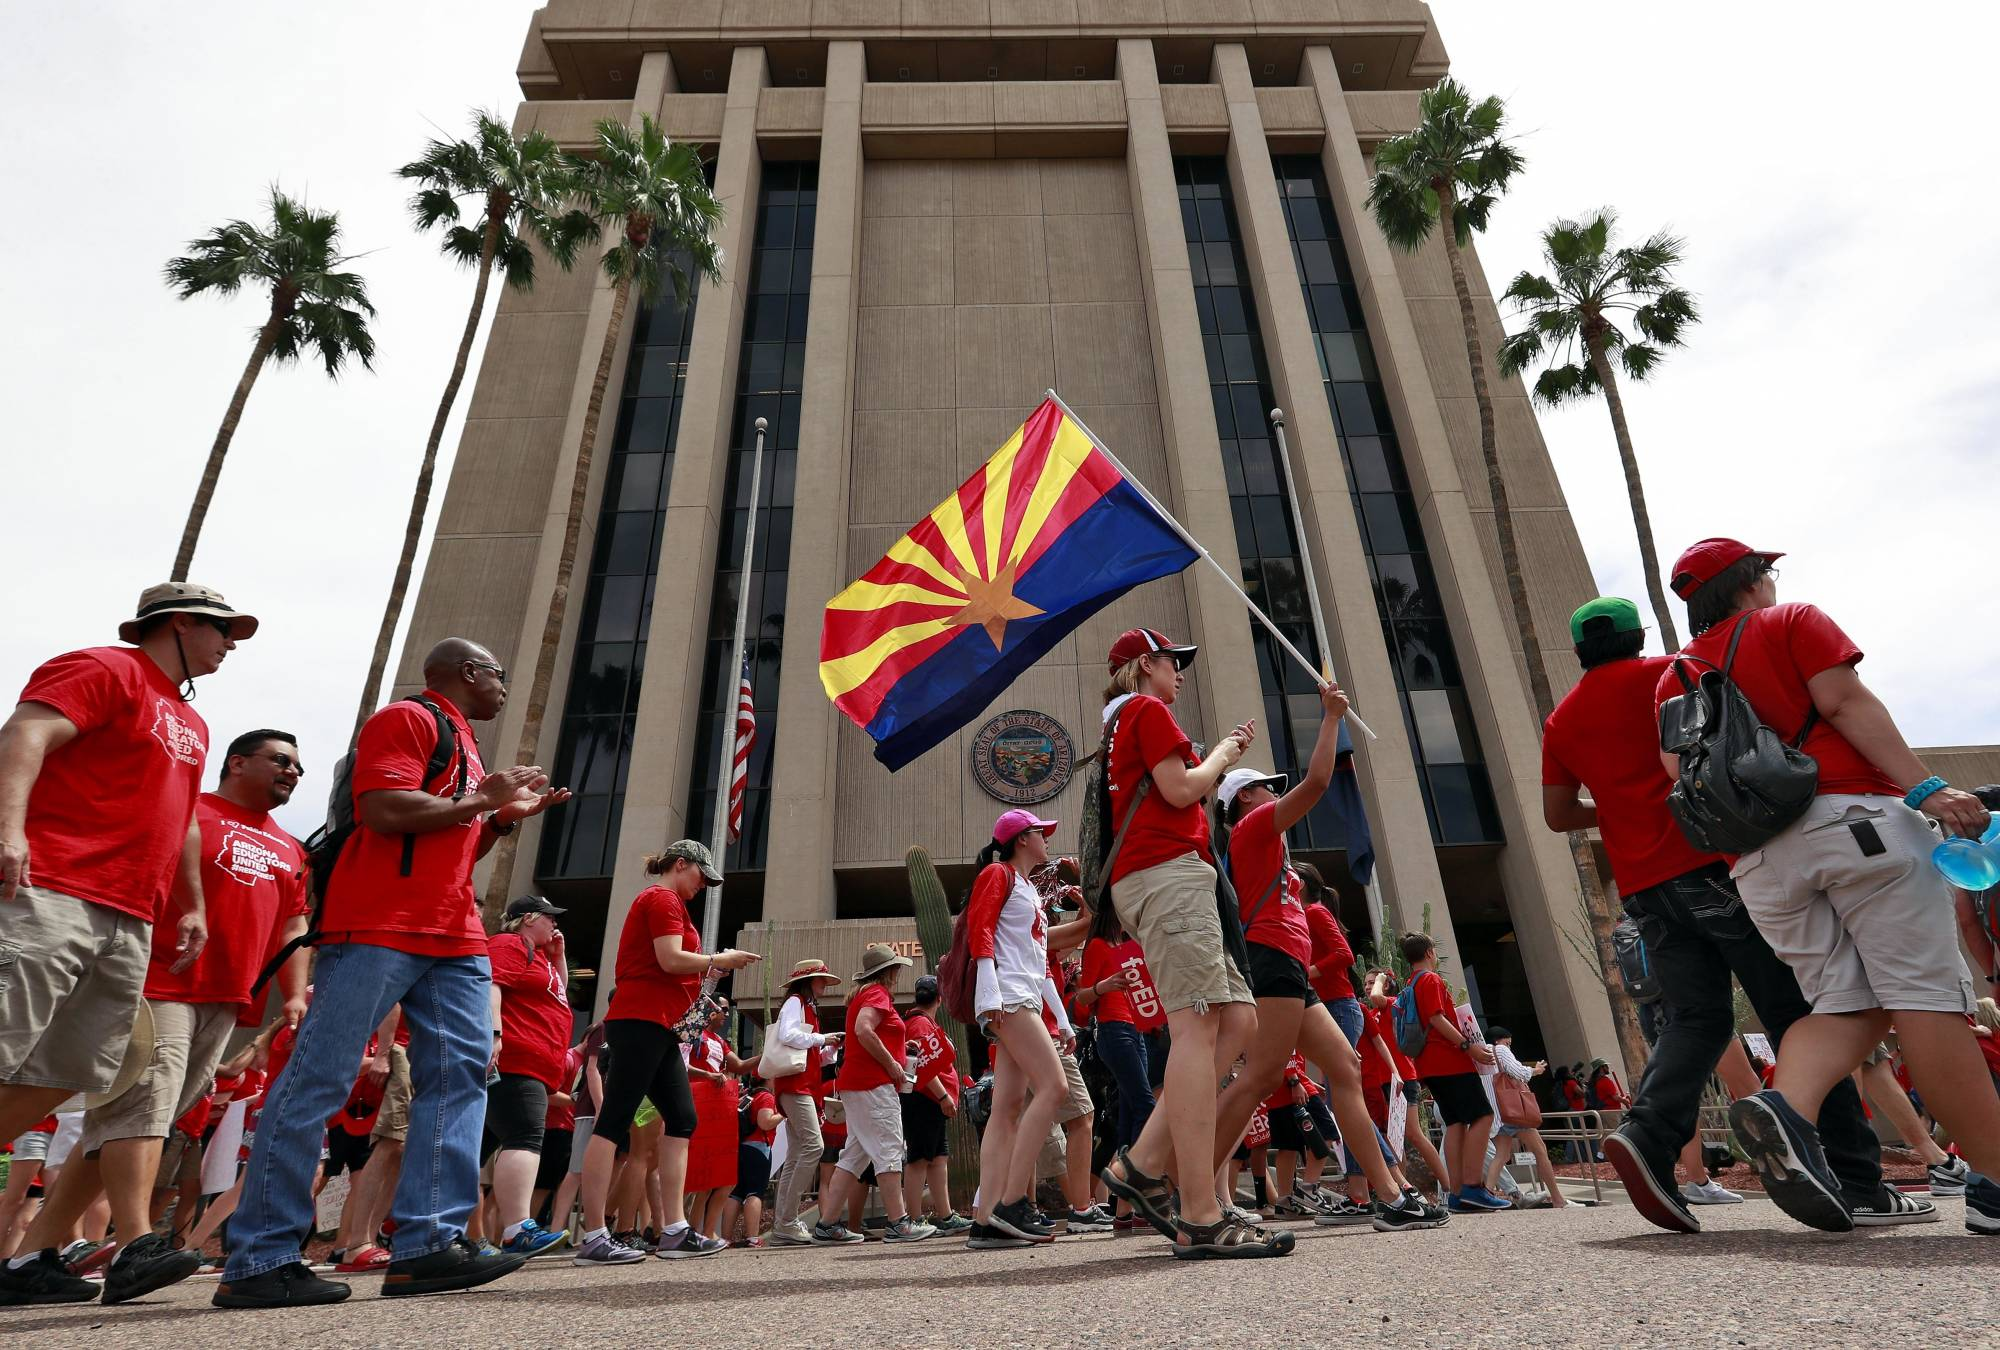 Arizona lawmakers move to pass raises for striking teachers arizona lawmakers move to pass raises for striking teachers federalnewsradio fandeluxe Image collections